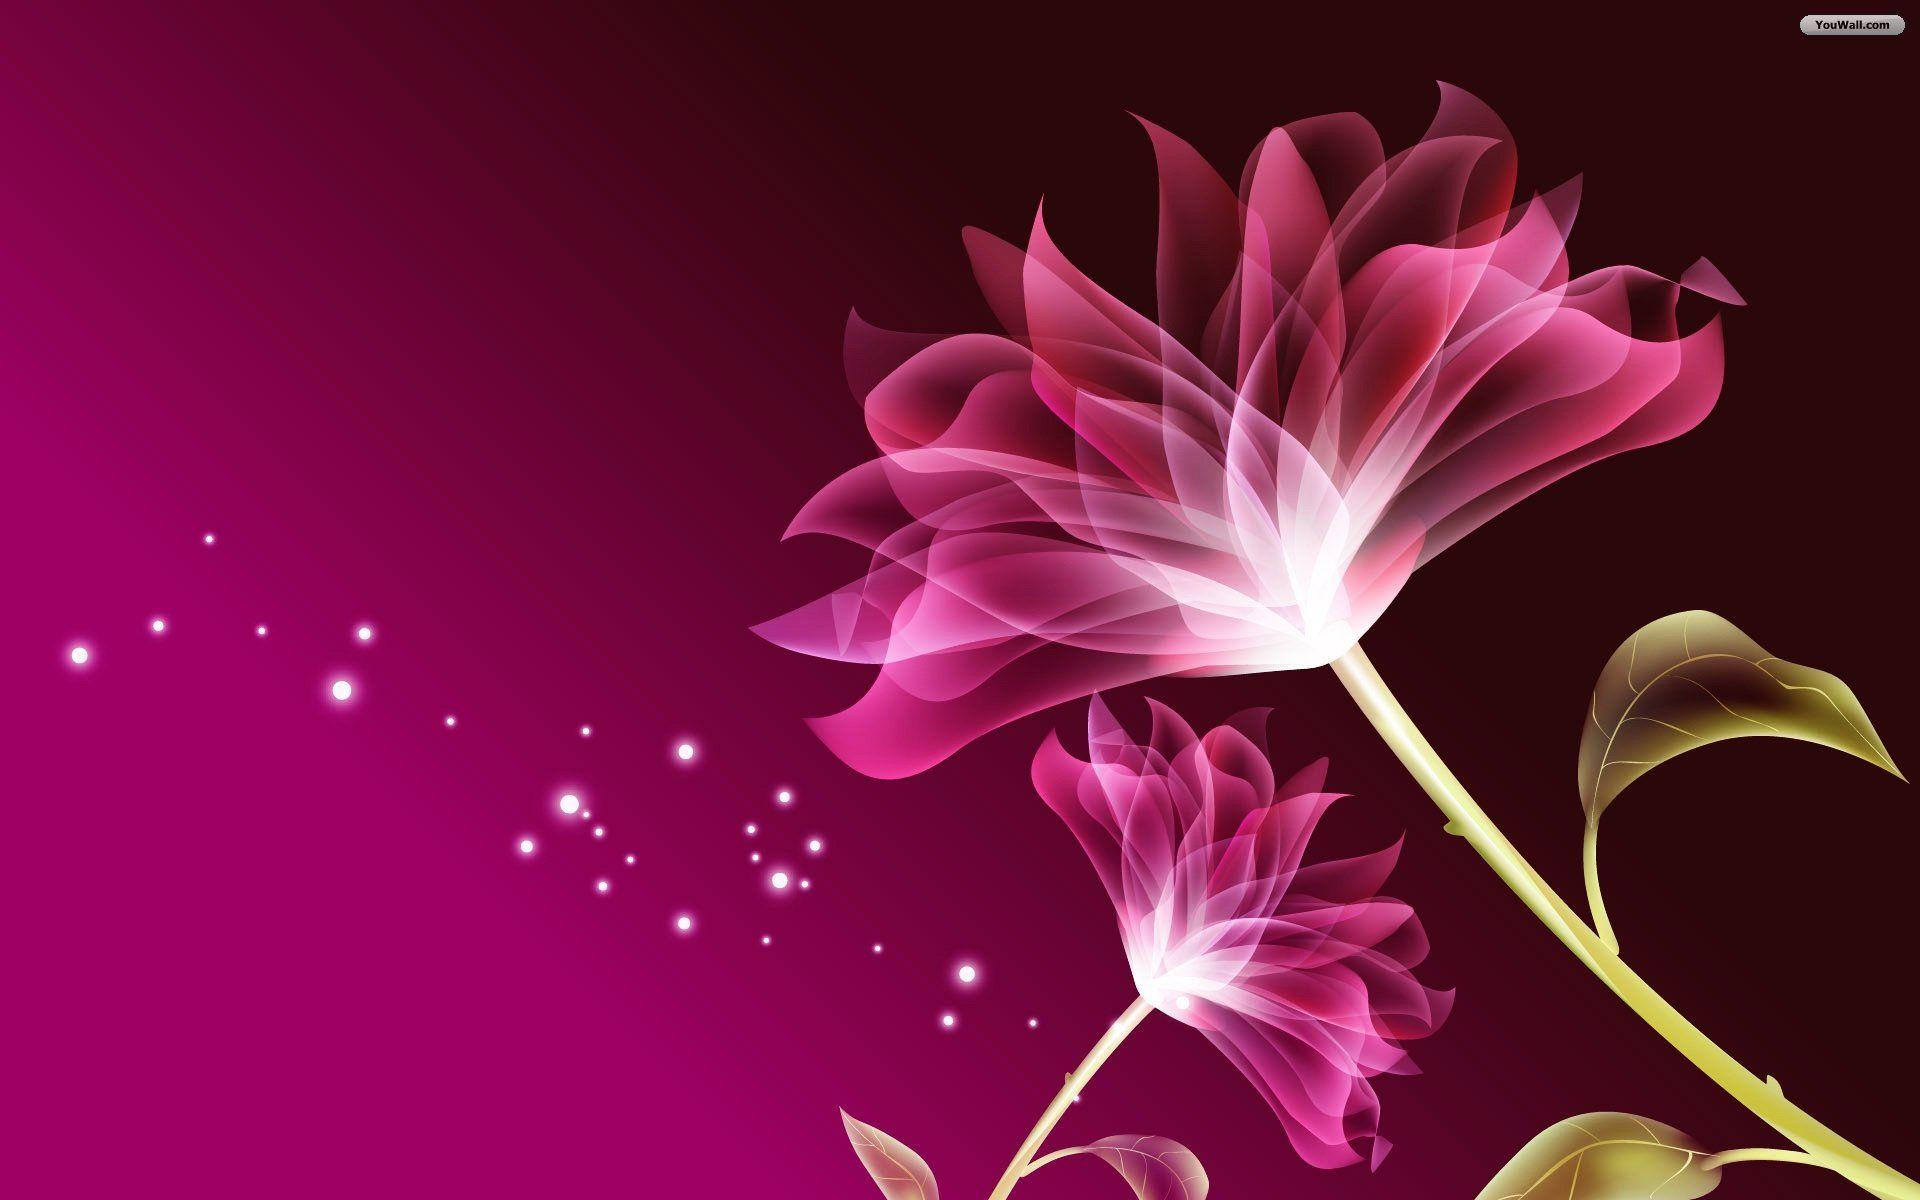 Purple Flower Background Free Download 11837 Full HD Wallpaper ...